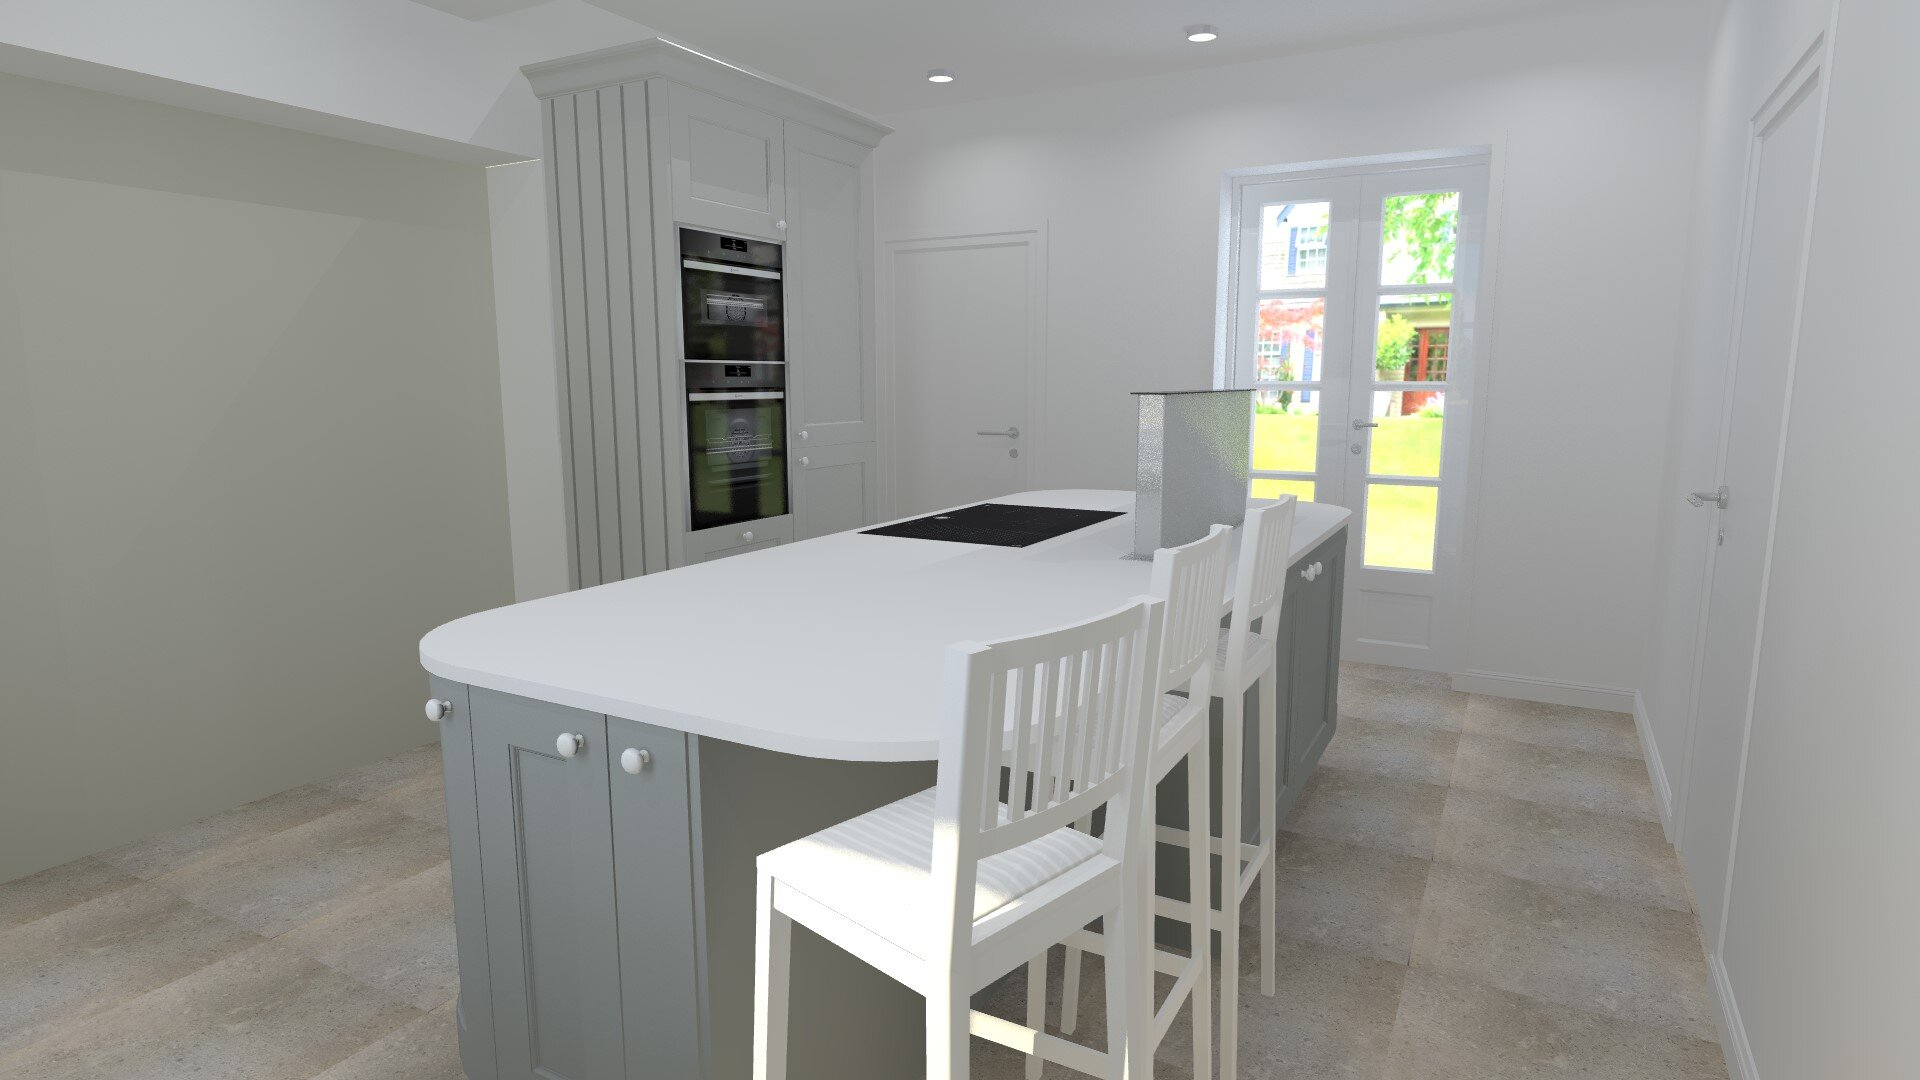 Mr and Mrs Reed Revised Kitchen Perspective 5.jpg